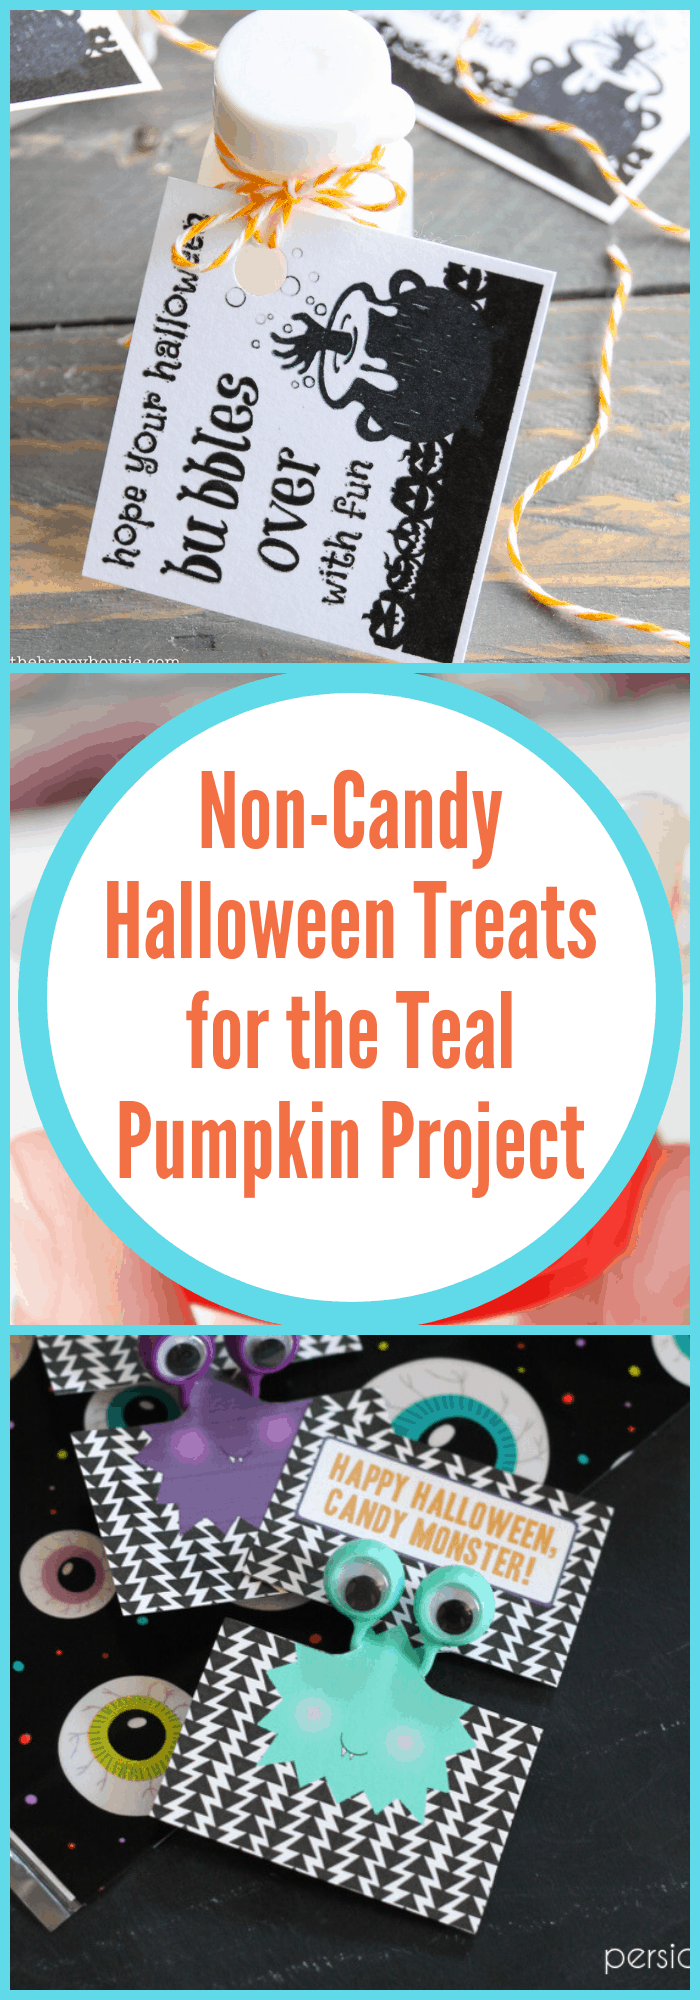 Non-candy Halloween Treats for the Teal Pumpkin Project